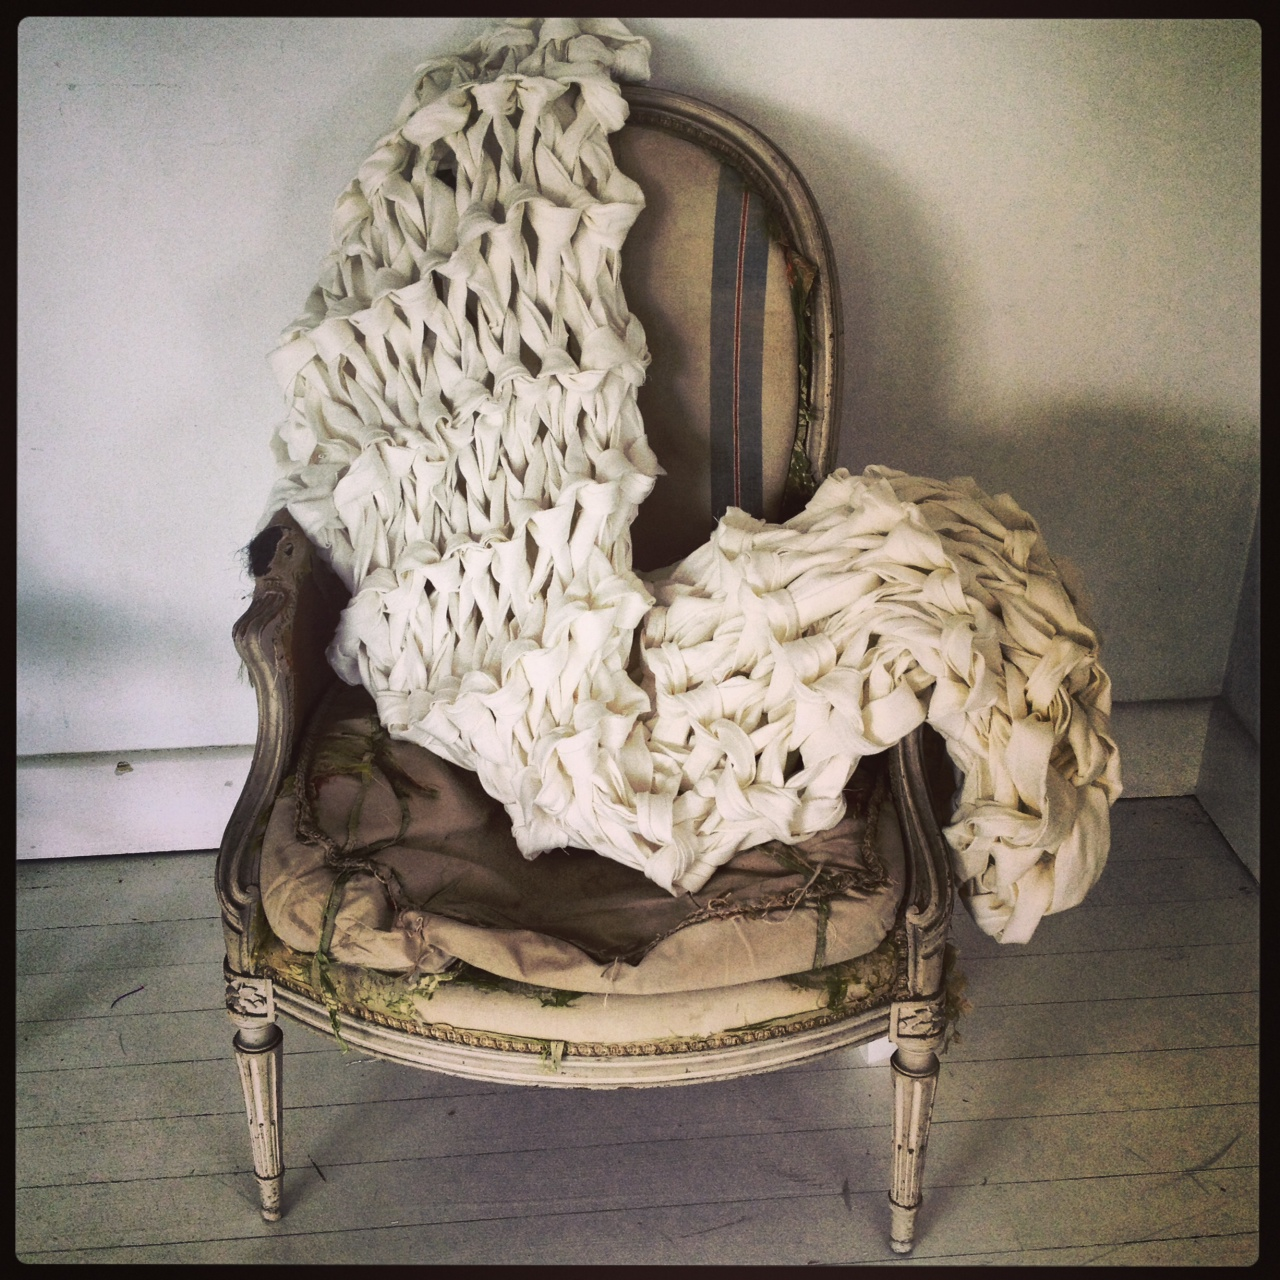 Oversized stitch linen throw over chair